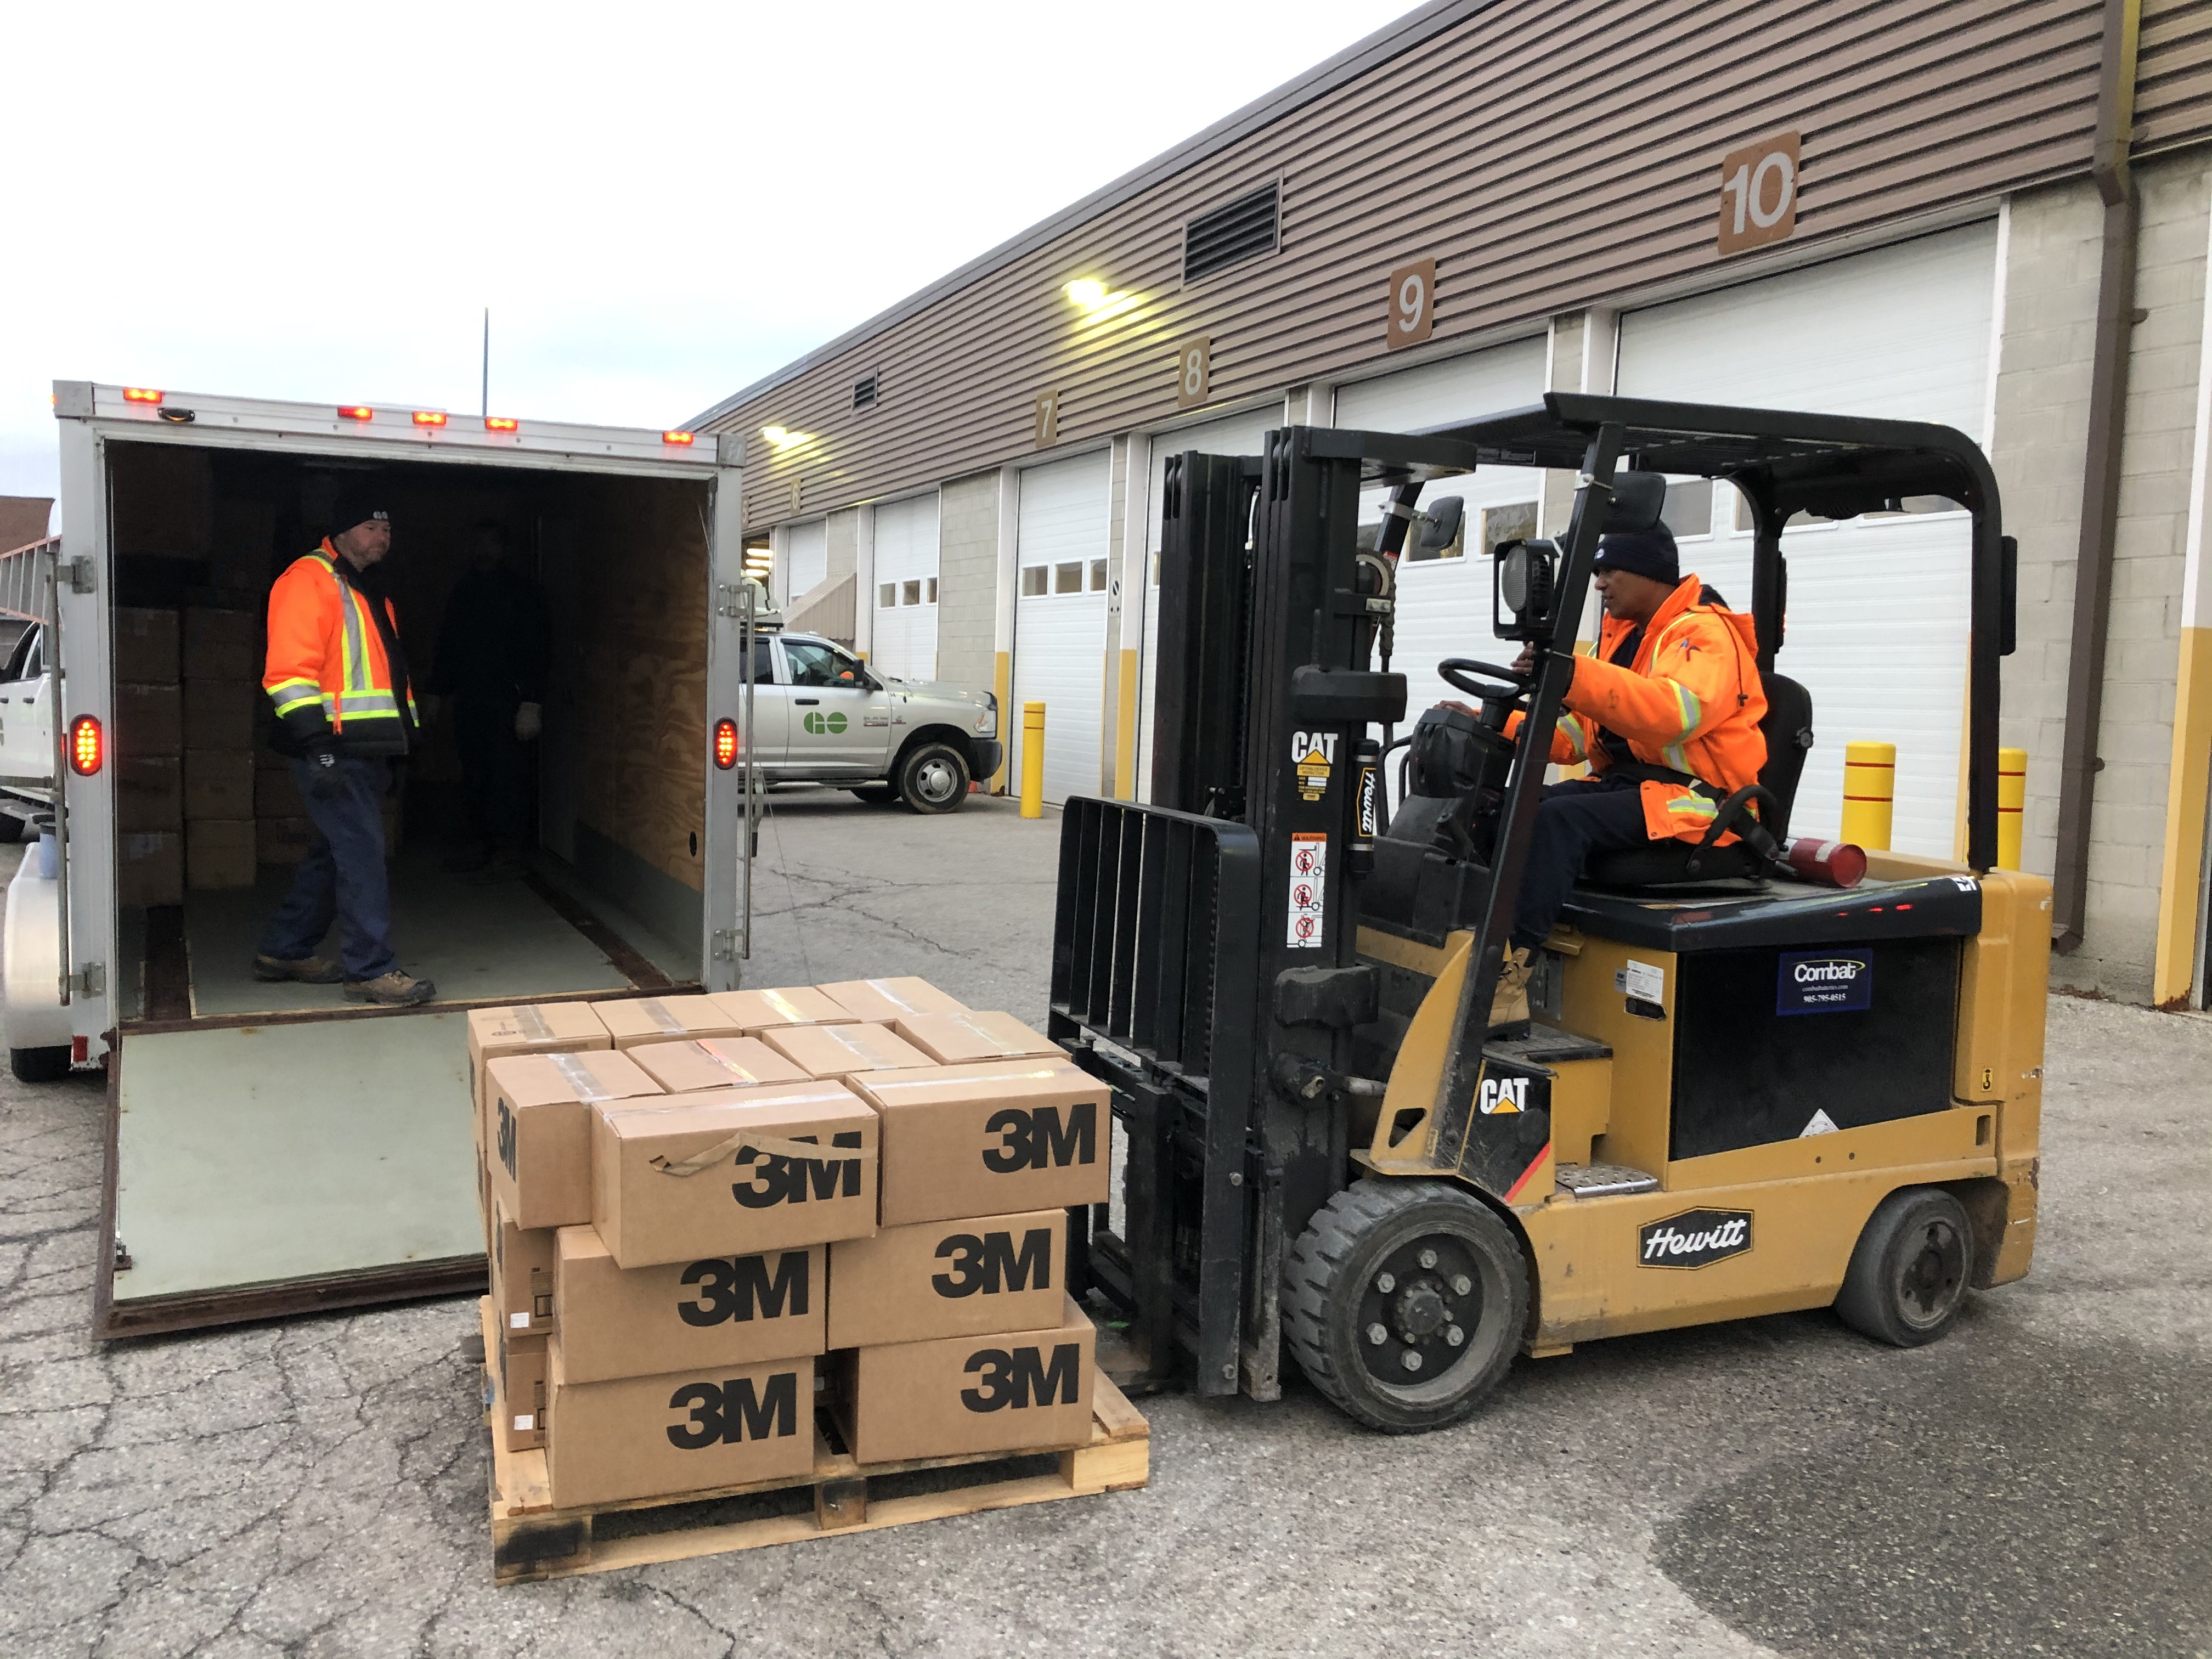 Image shows a forklift moving 3M boxes.